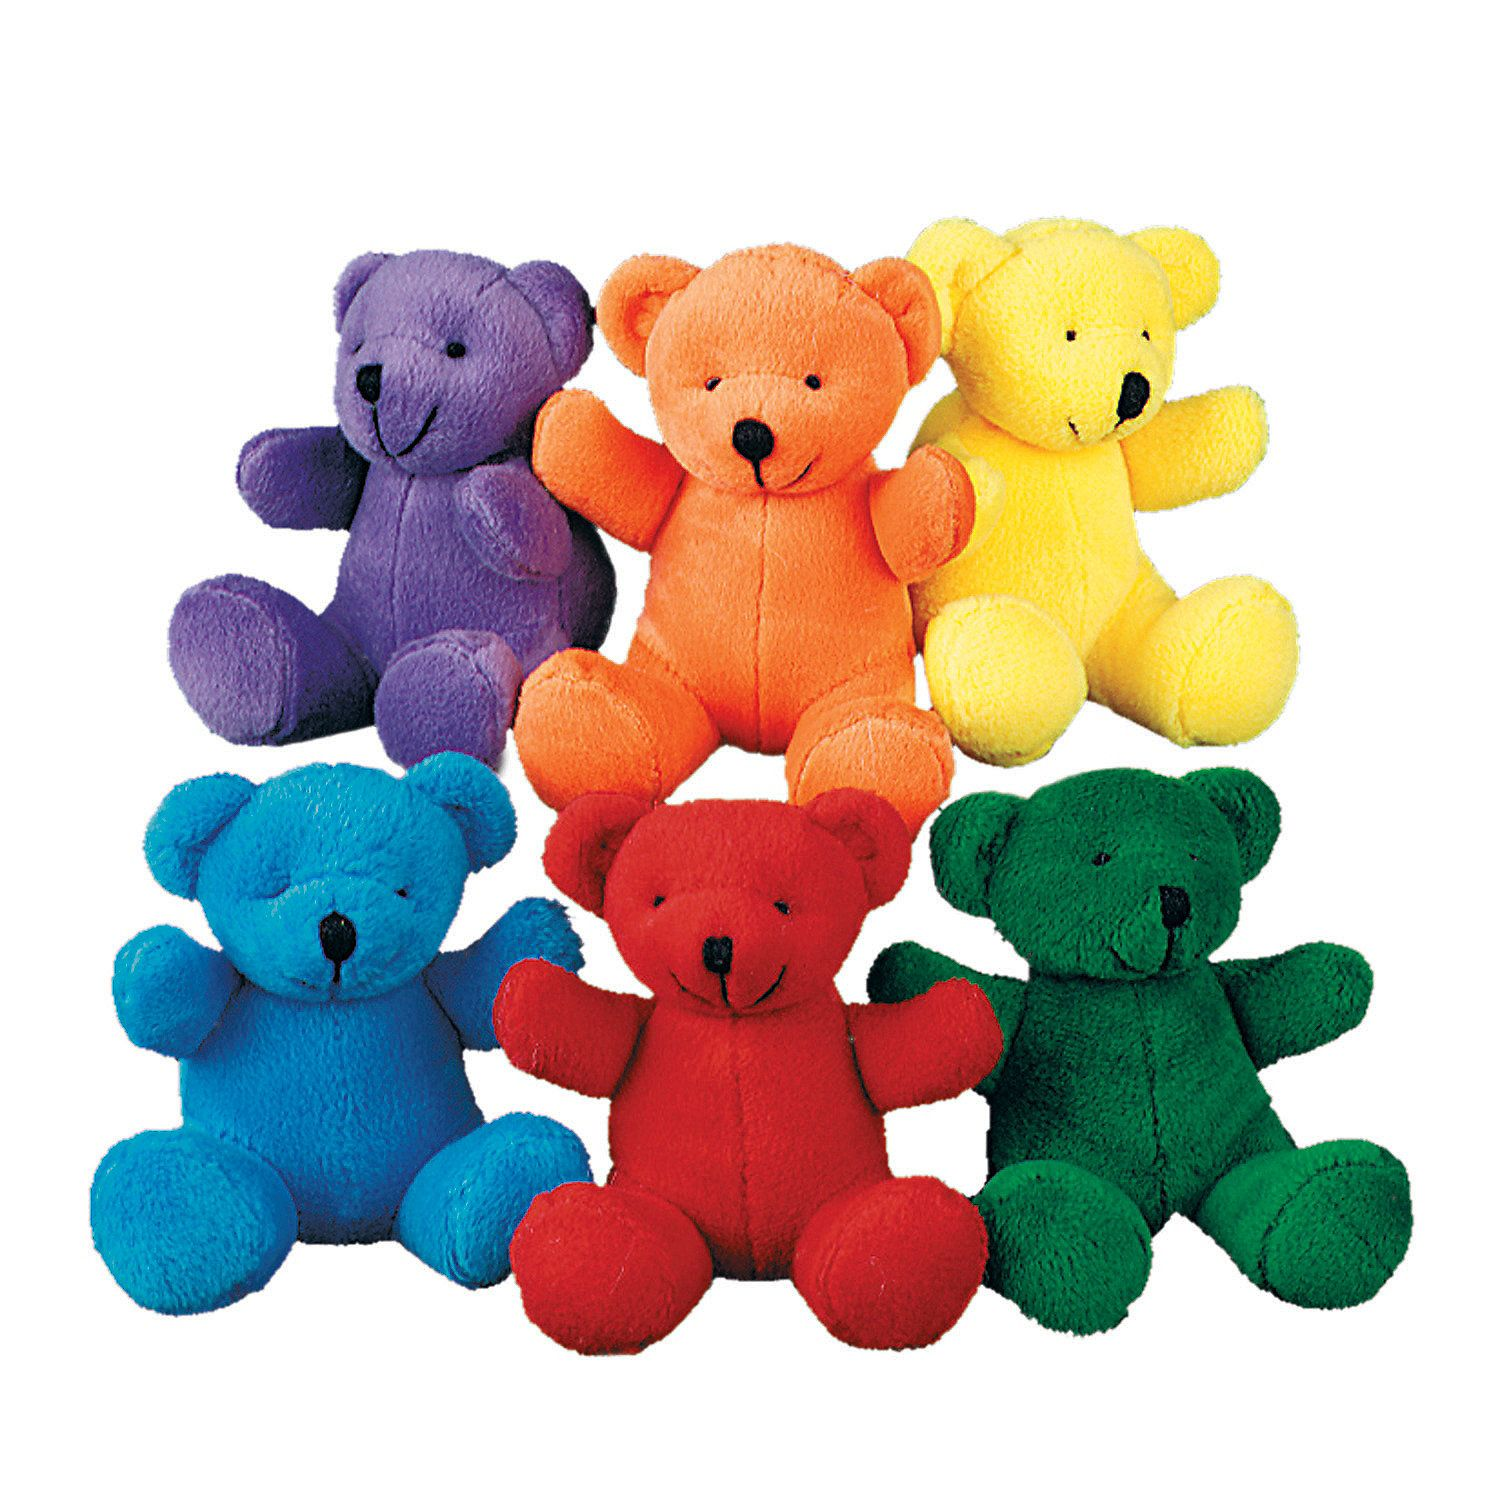 Super Soft Stuffed Animals For Babies, Pin On Carnival